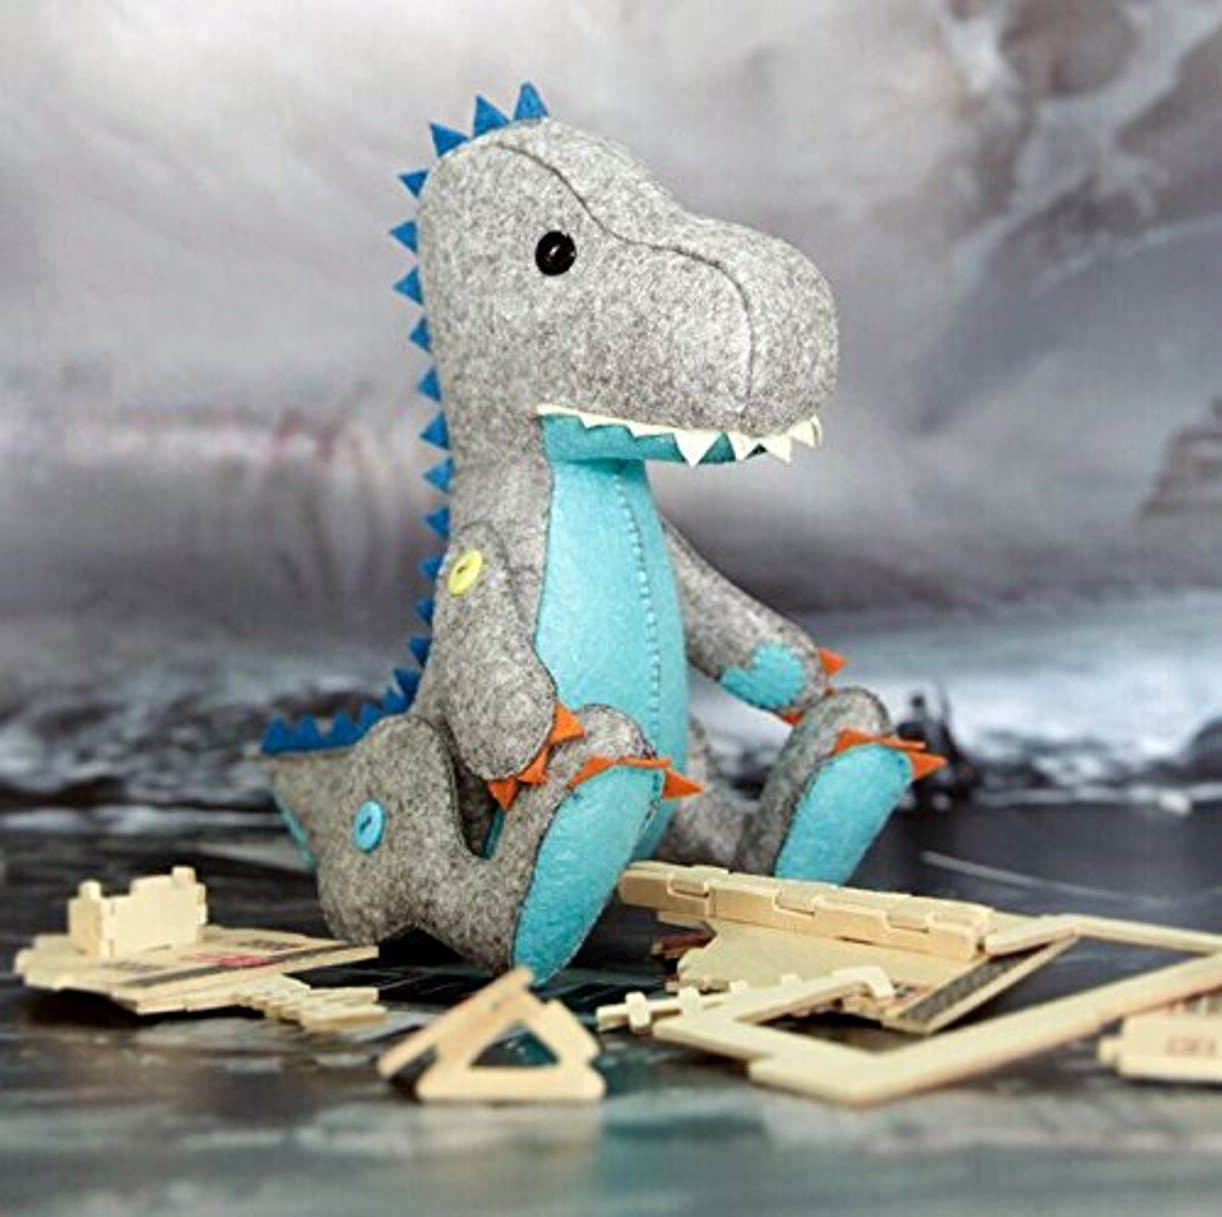 DIY Sewing Polyester Felt Nonwoven Fabric Craft Kit Doll Kits : Make Your Own Doll-Dinosaur CYD